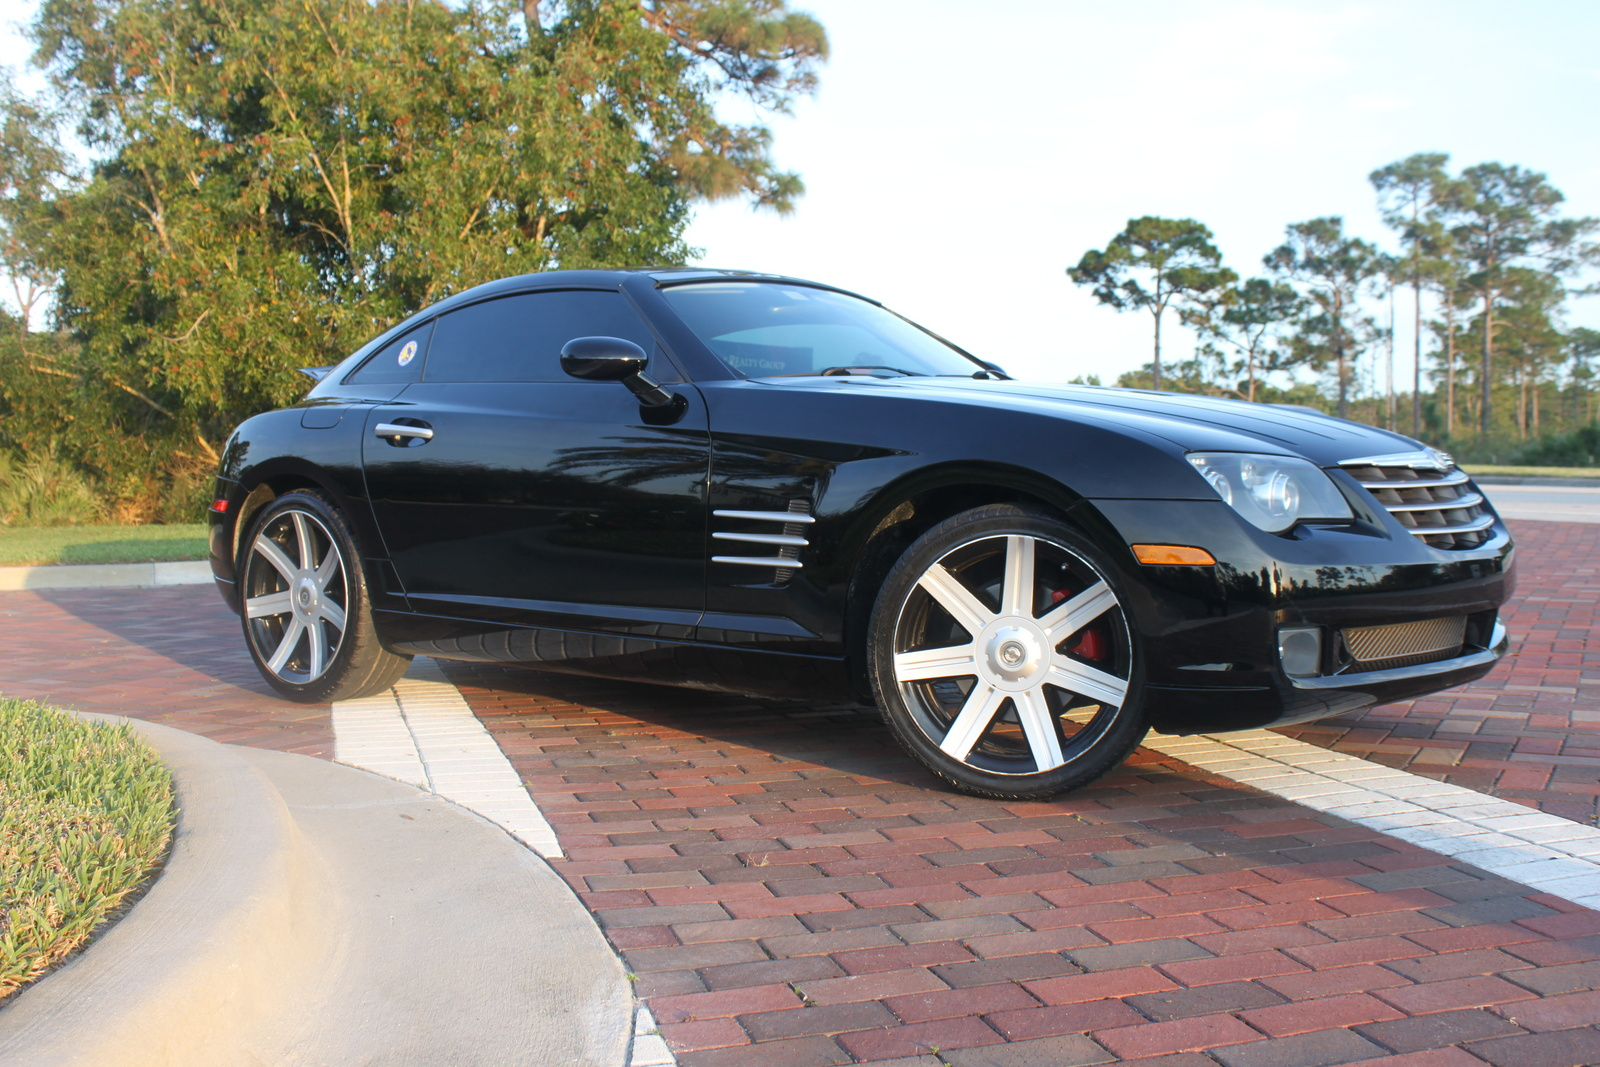 Picture of 2004 chrysler crossfire base exterior